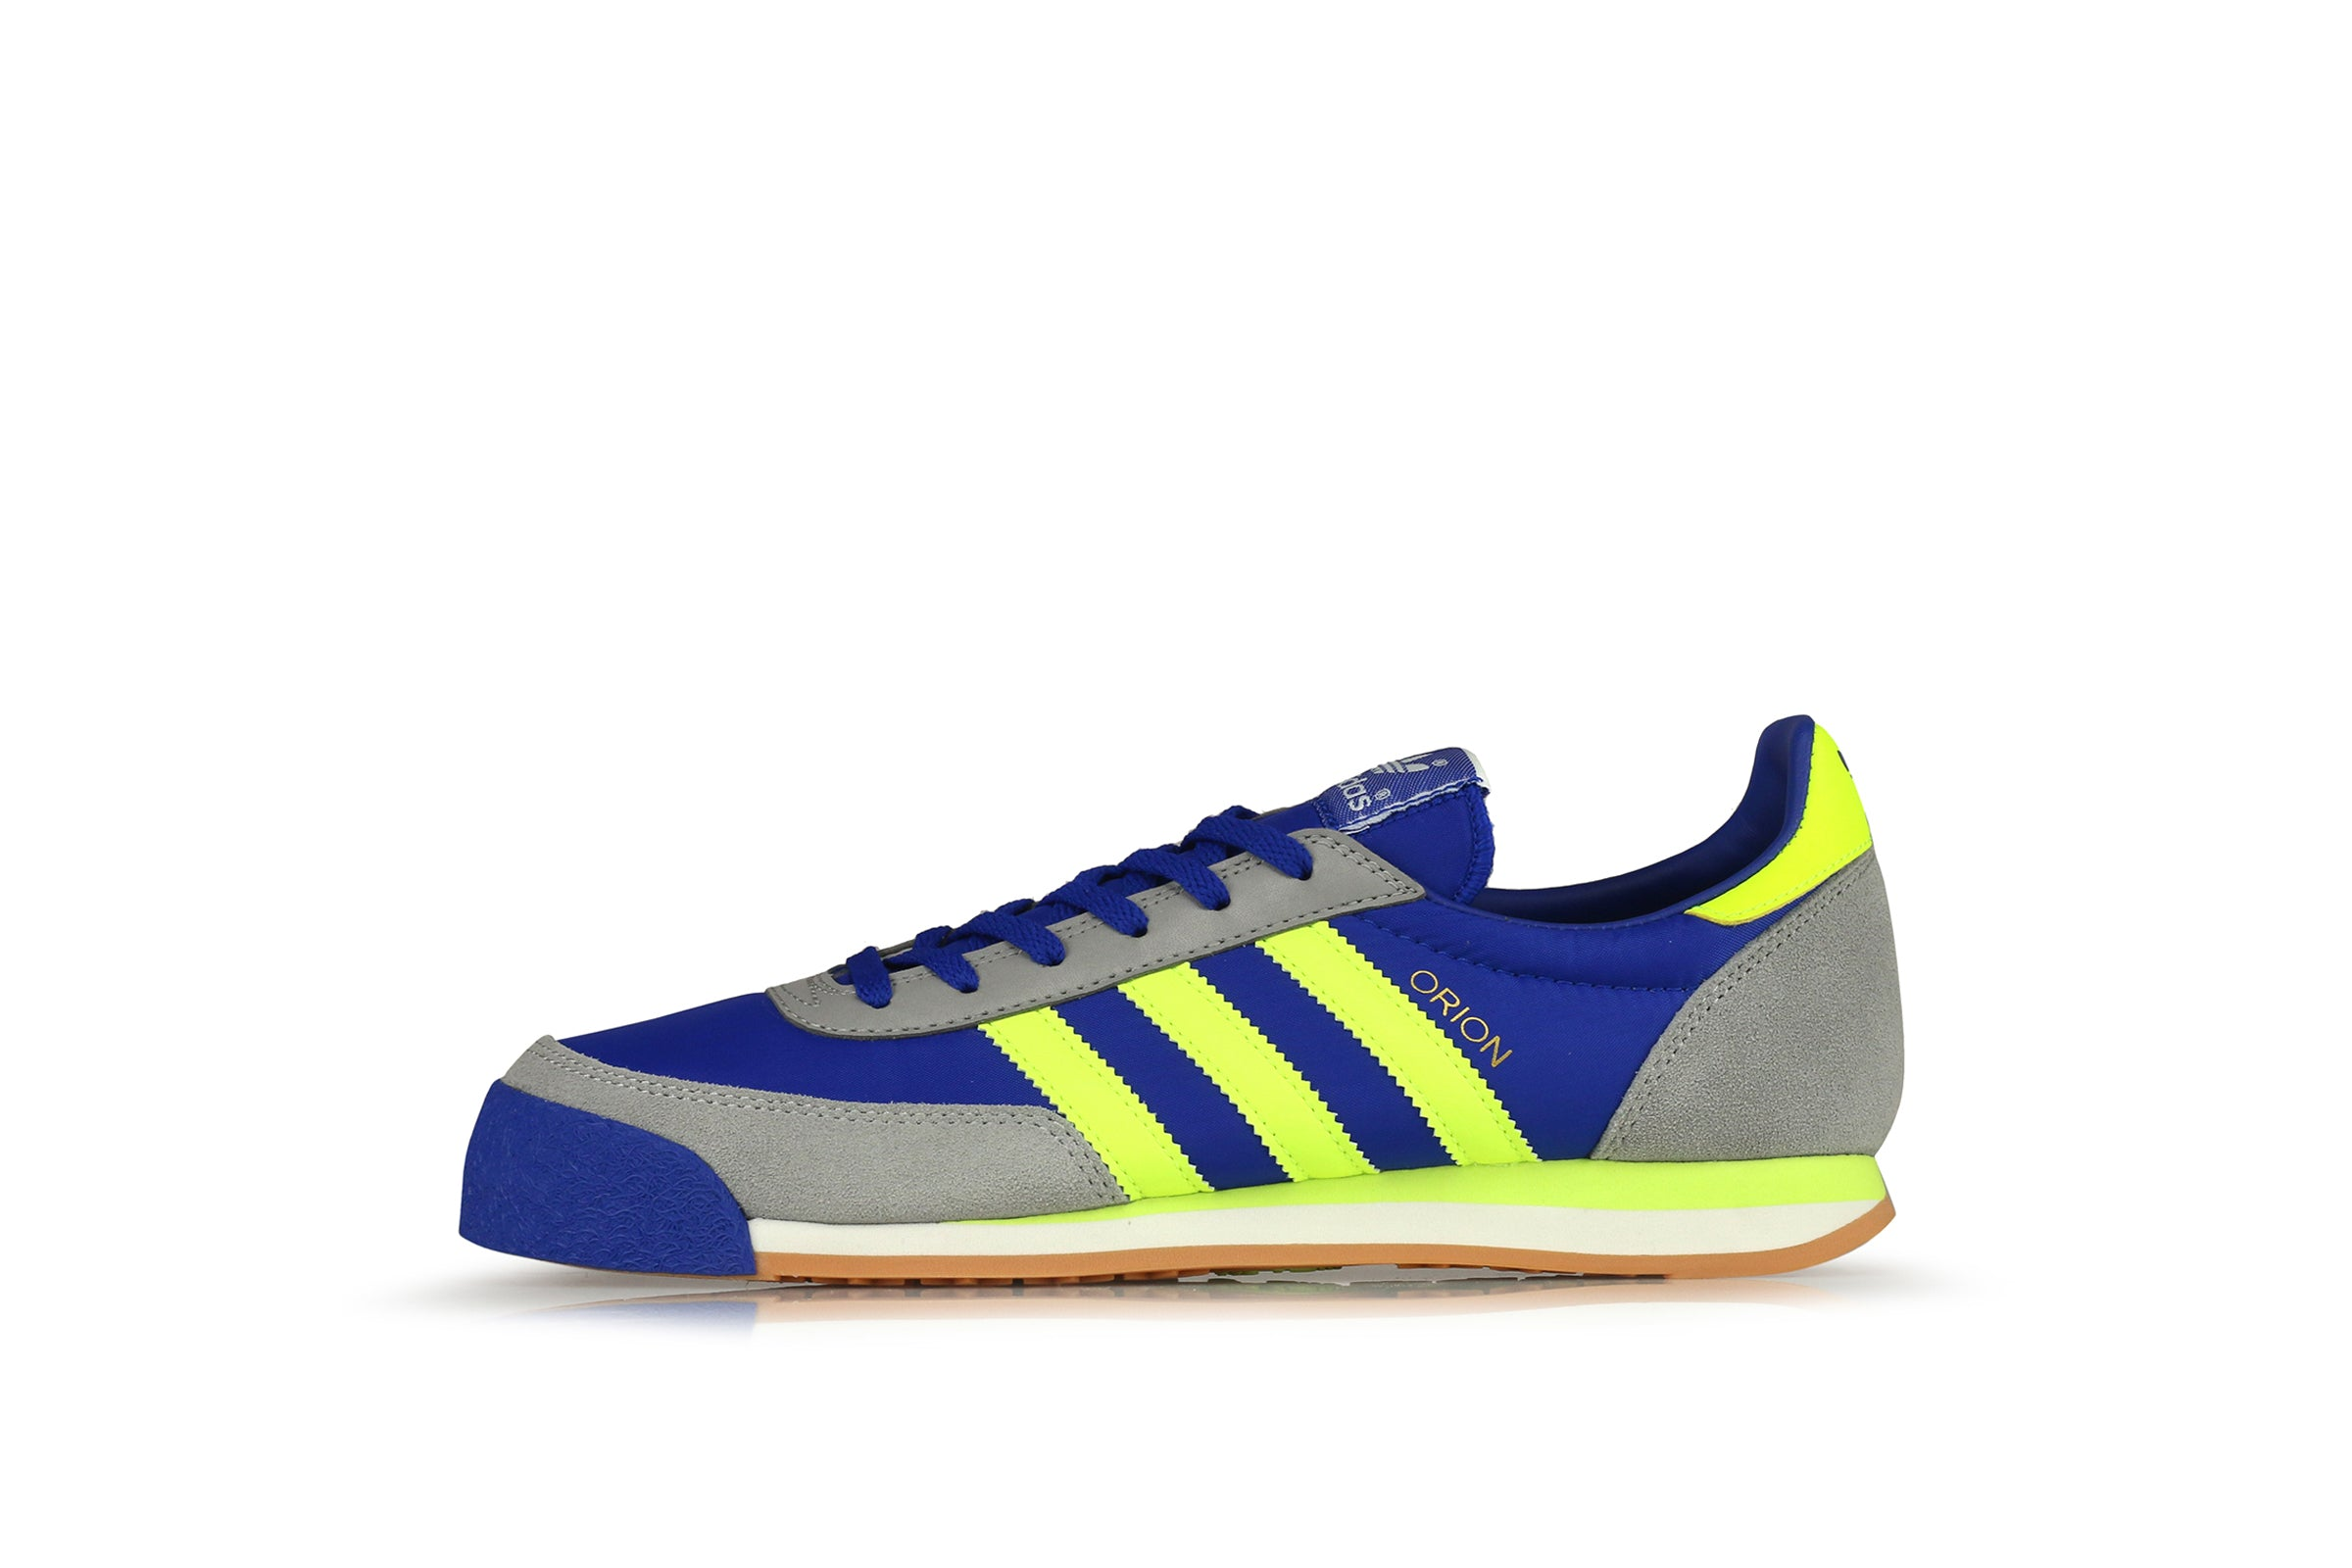 Adidas Orion